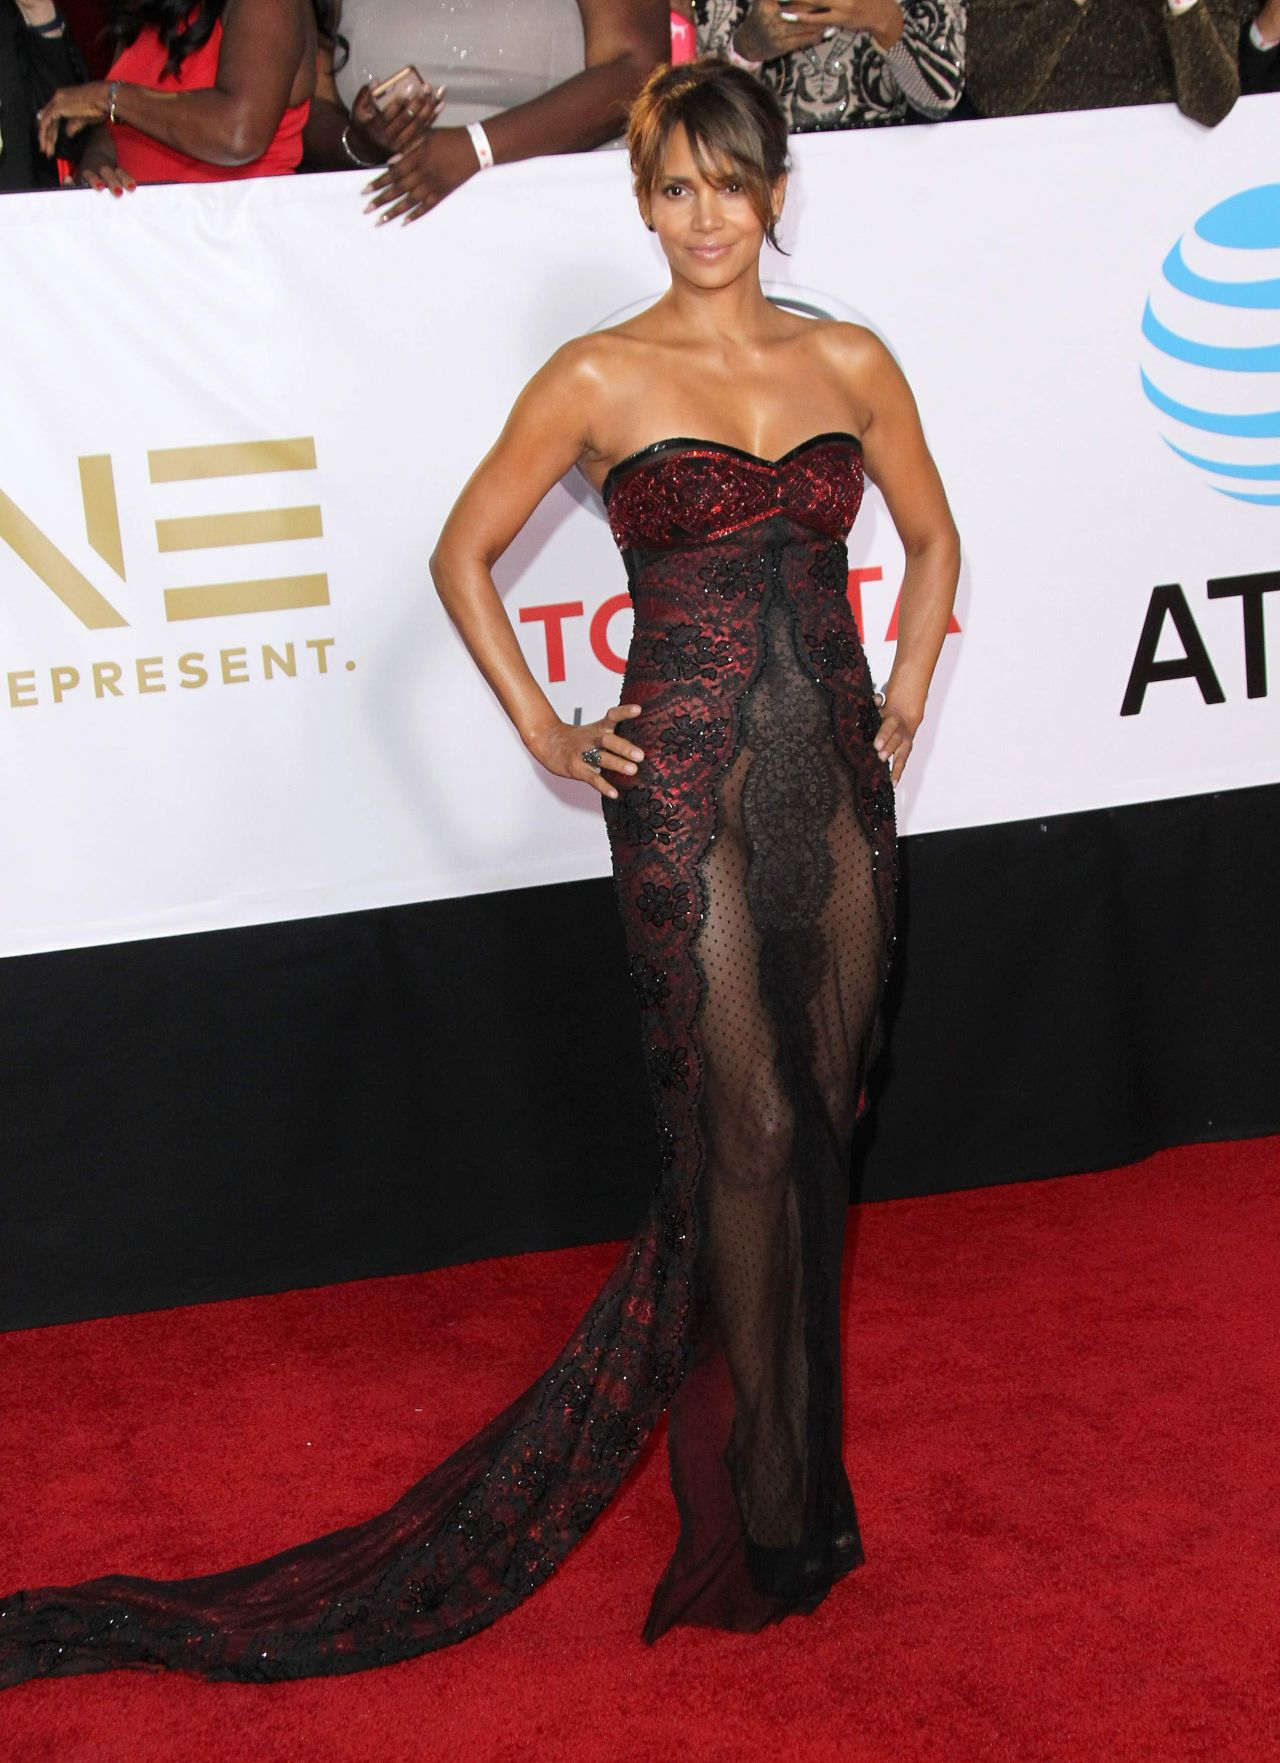 http://celebmafia.com/wp-content/uploads/2018/01/halle-berry-naacp-image-awards-in-pasadena-1.jpg